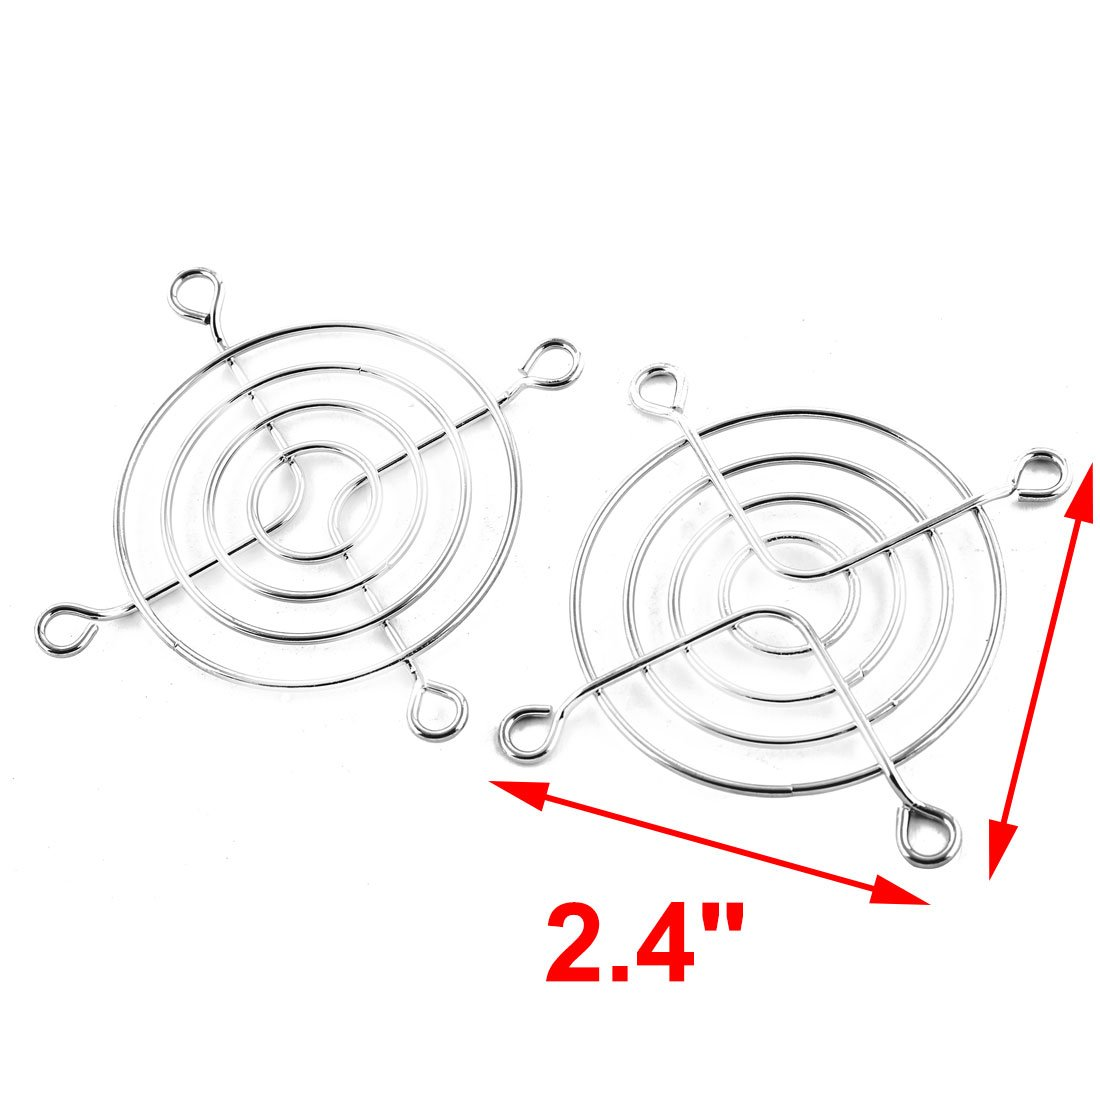 Dealmux 5 X Axial 60mm Cooling Fan Grill Metal Wire Finger Guards Uxcell Wiring Diagram Silver Tone Dlm